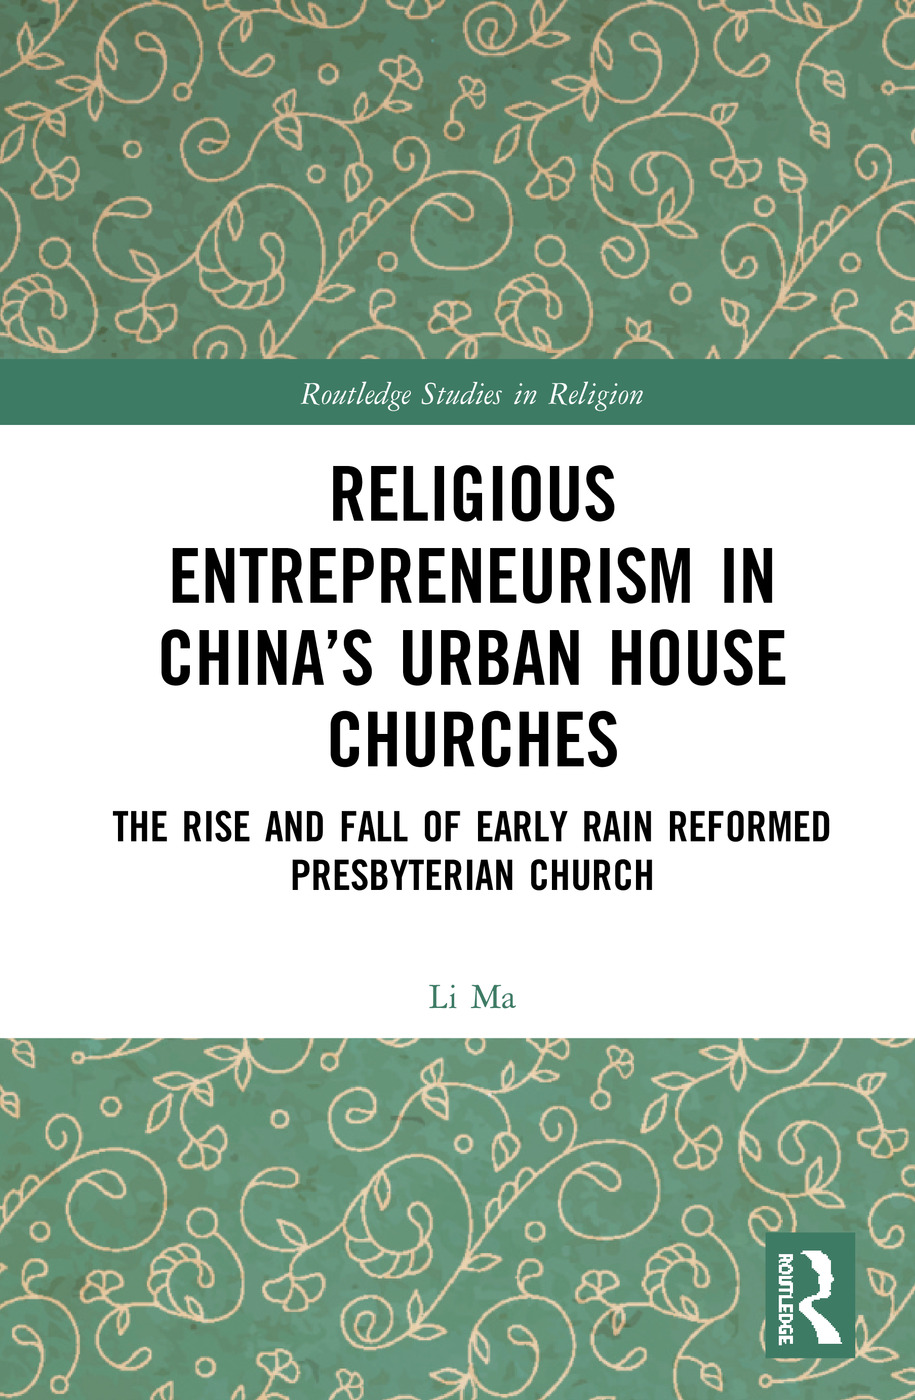 Religious Entrepreneurism in China's Urban House Churches: The Rise and Fall of Early Rain Reformed Presbyterian Church book cover